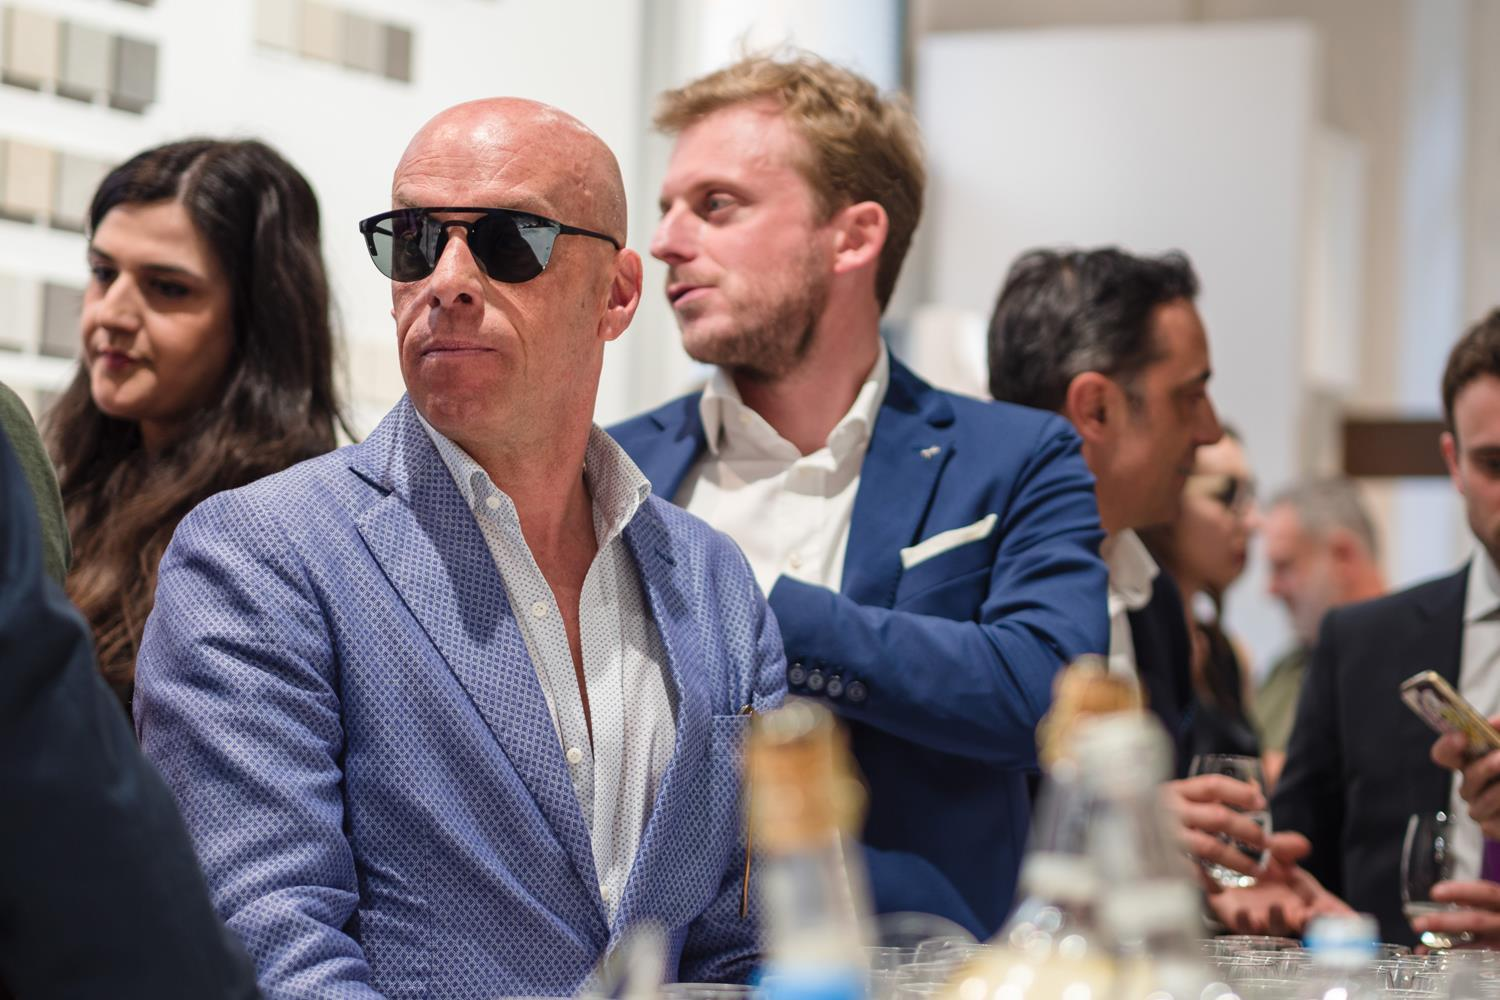 Cotto d'Este at the Fuorisalone - Night out: Photo 23